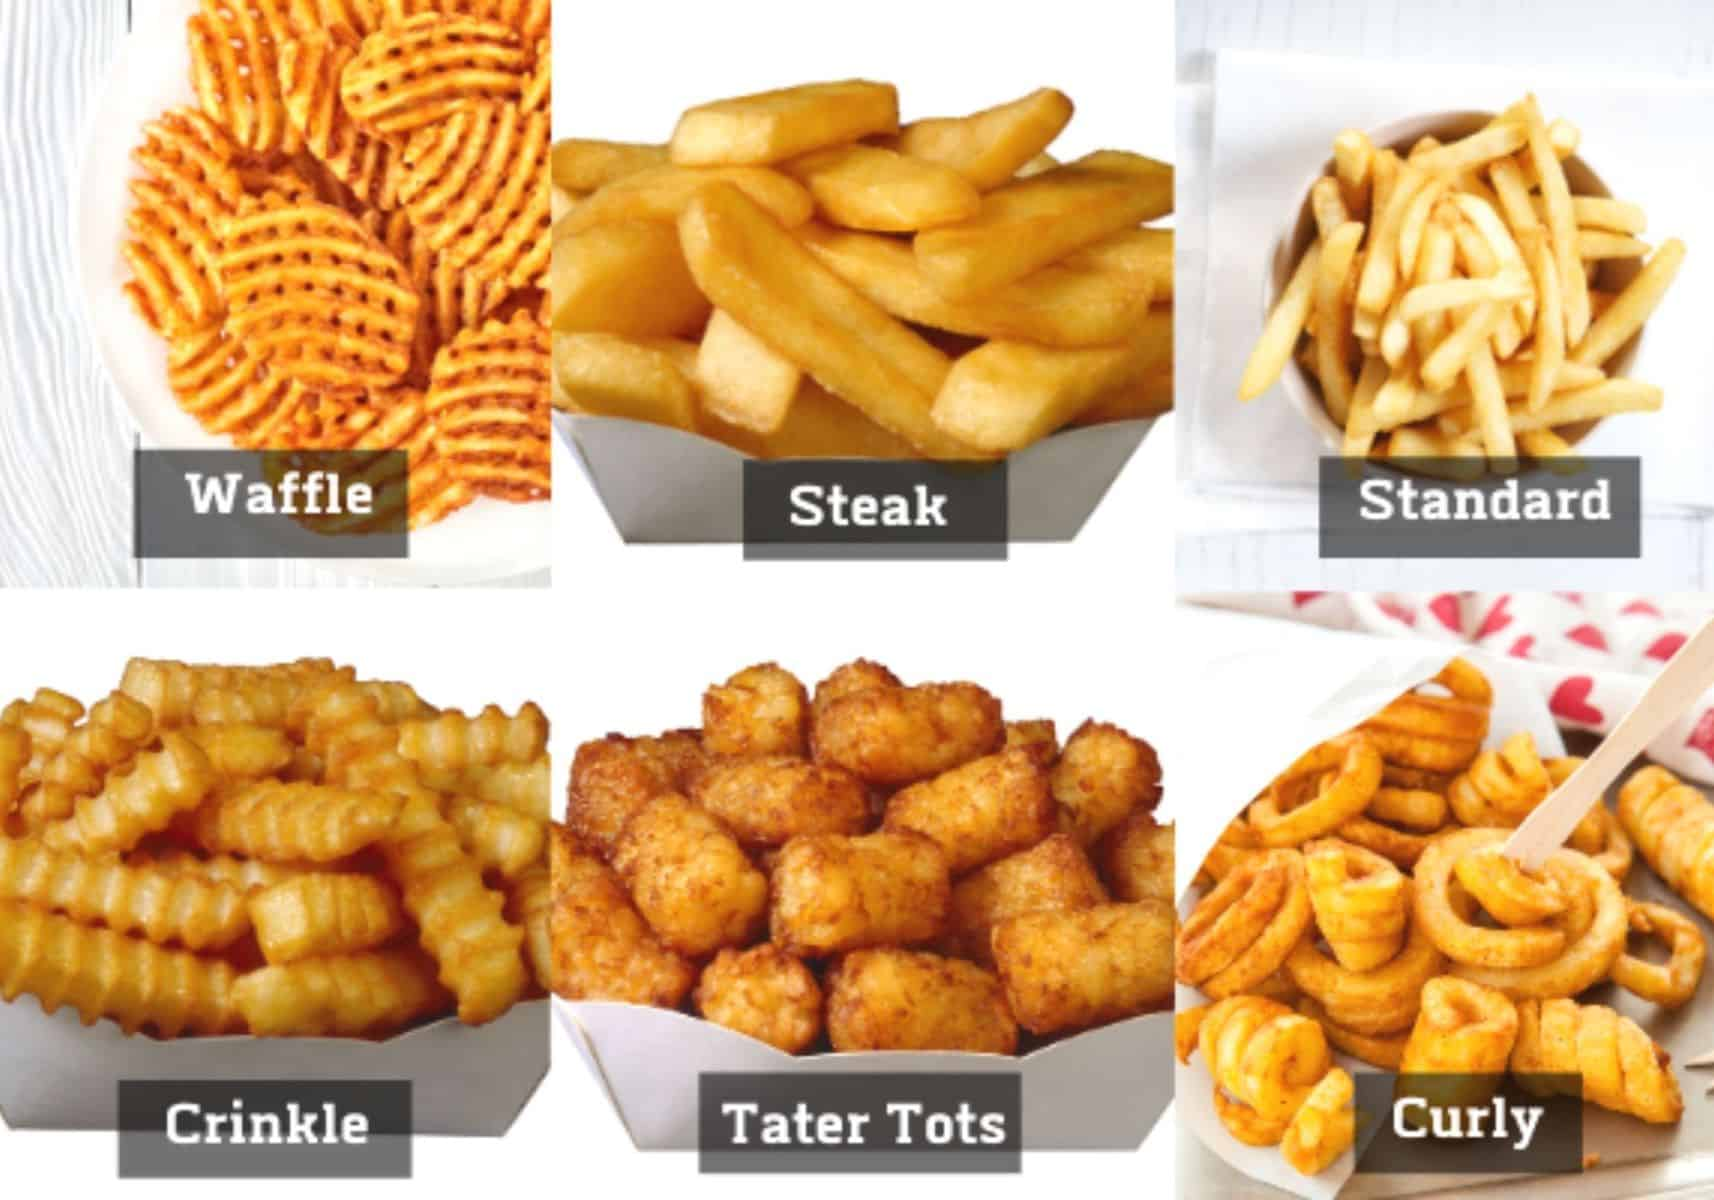 french fry choices diagram.